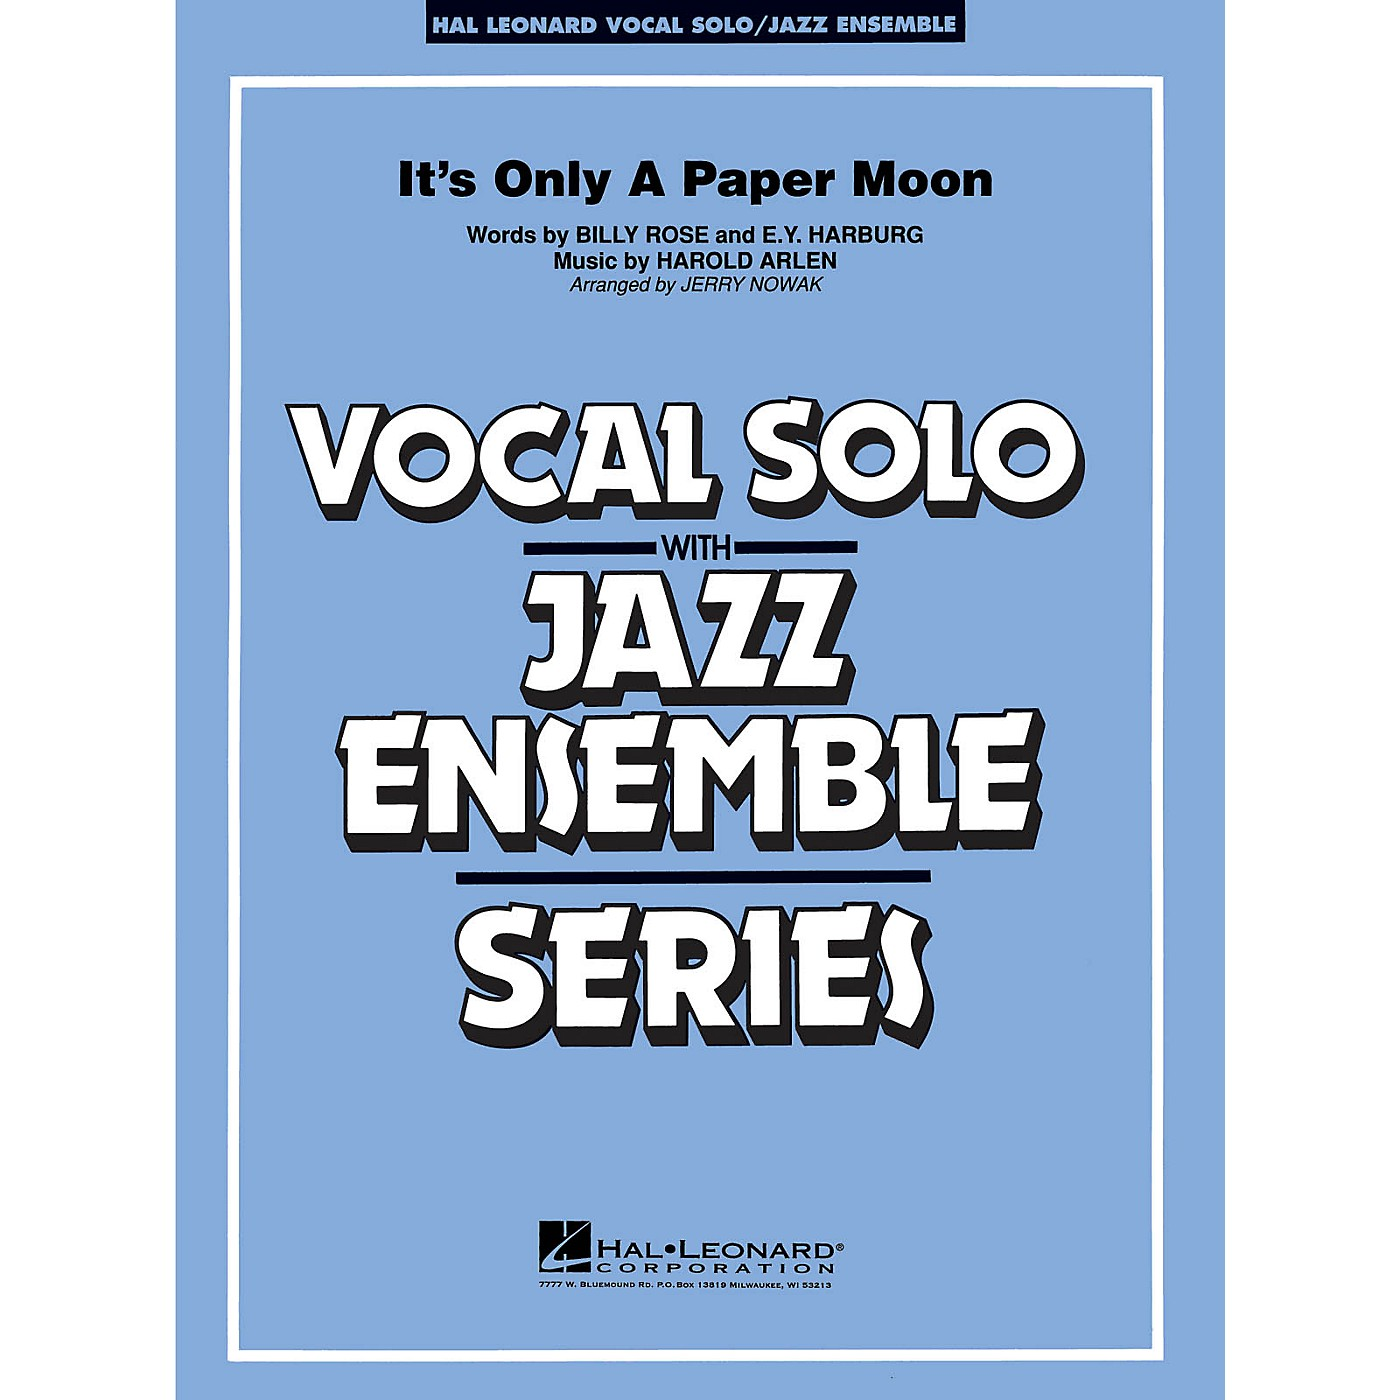 Hal Leonard It's Only a Paper Moon (Vocal Solo with Jazz Ensemble (Key: Eb)) Jazz Band Level 3-4 by Harold Arlen thumbnail